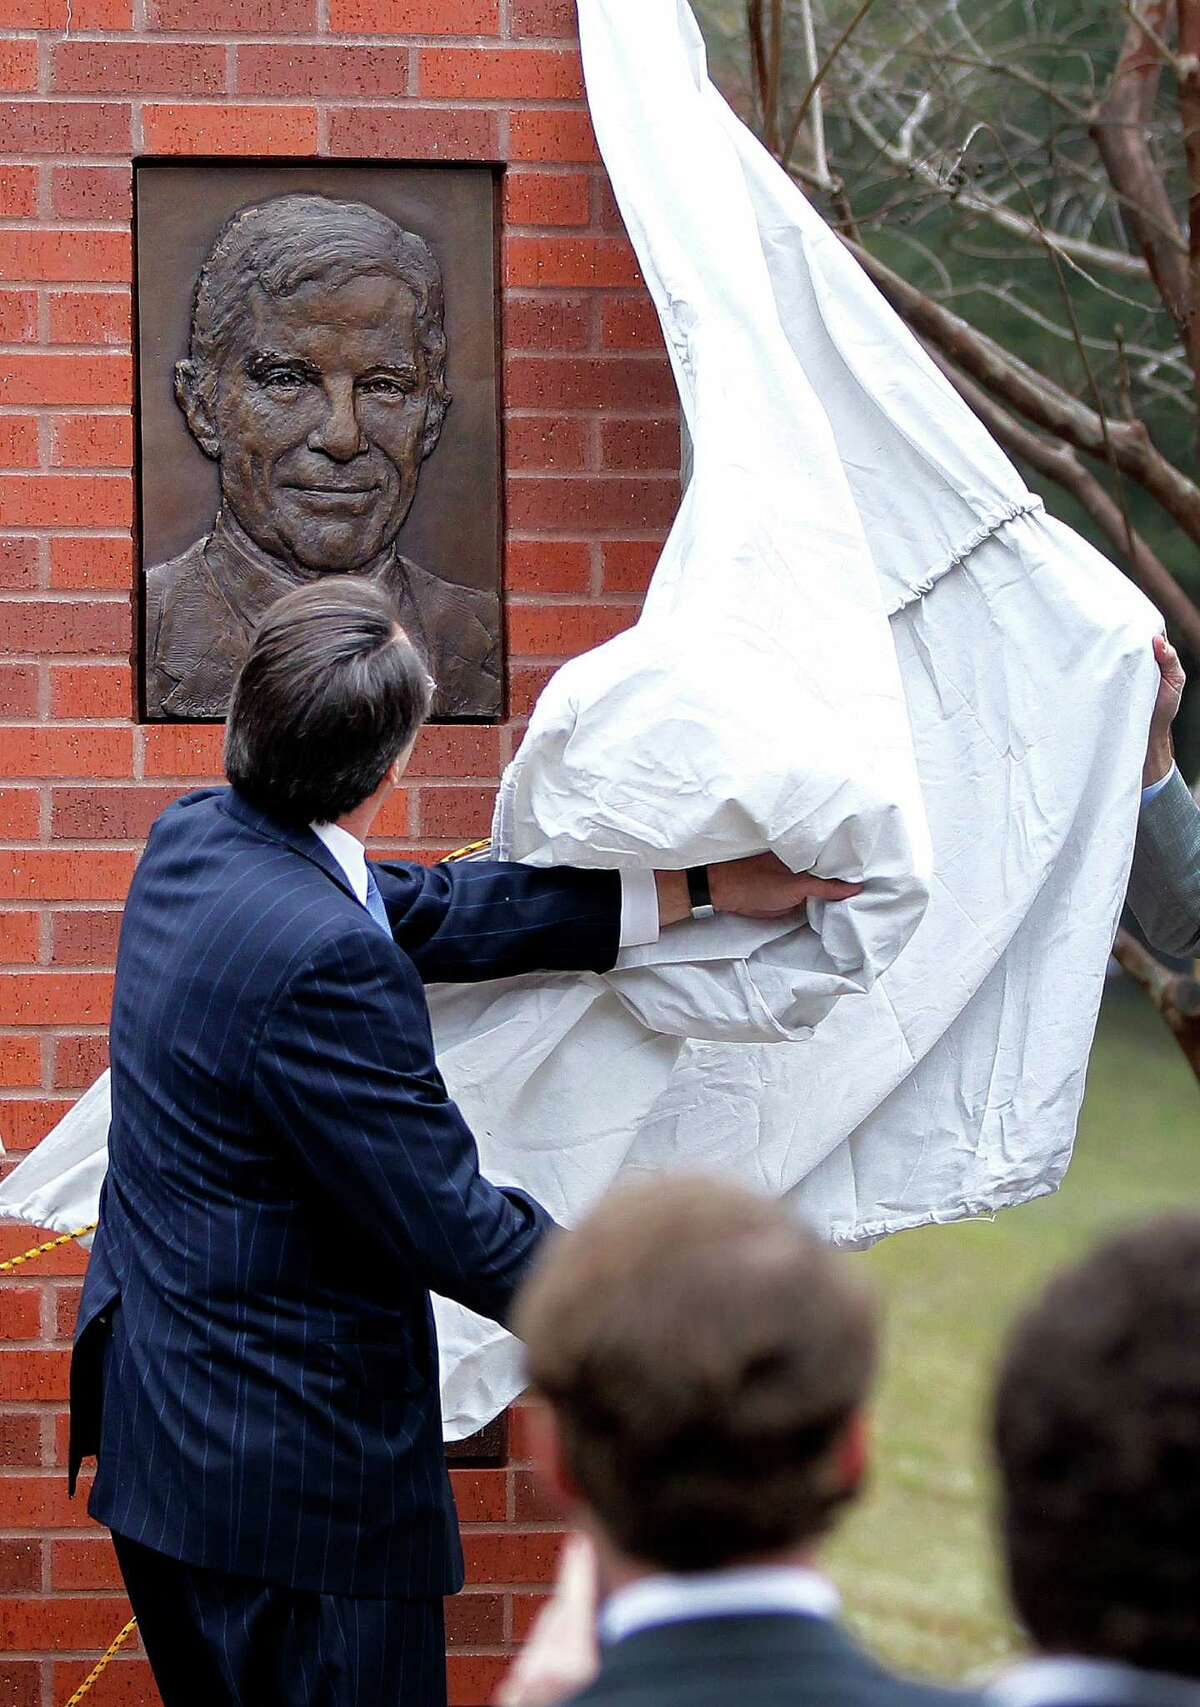 Robert Mosbacher, Jr. pulls a sheet off of one of the plaques during an invitation-only ceremony officially renaming the Preston Street Bridge near downtown in late Robert A. Mosbacher, Sr.'s honor on Wednesday, Jan. 20, 2016, in Houston. The event was attended by Former President and Mrs George H. W. Bush and former Secretary of State and Mrs. James A. Baker, III will join the family, friends and former colleagues of the late Robert A. Mosbacher, Sr.